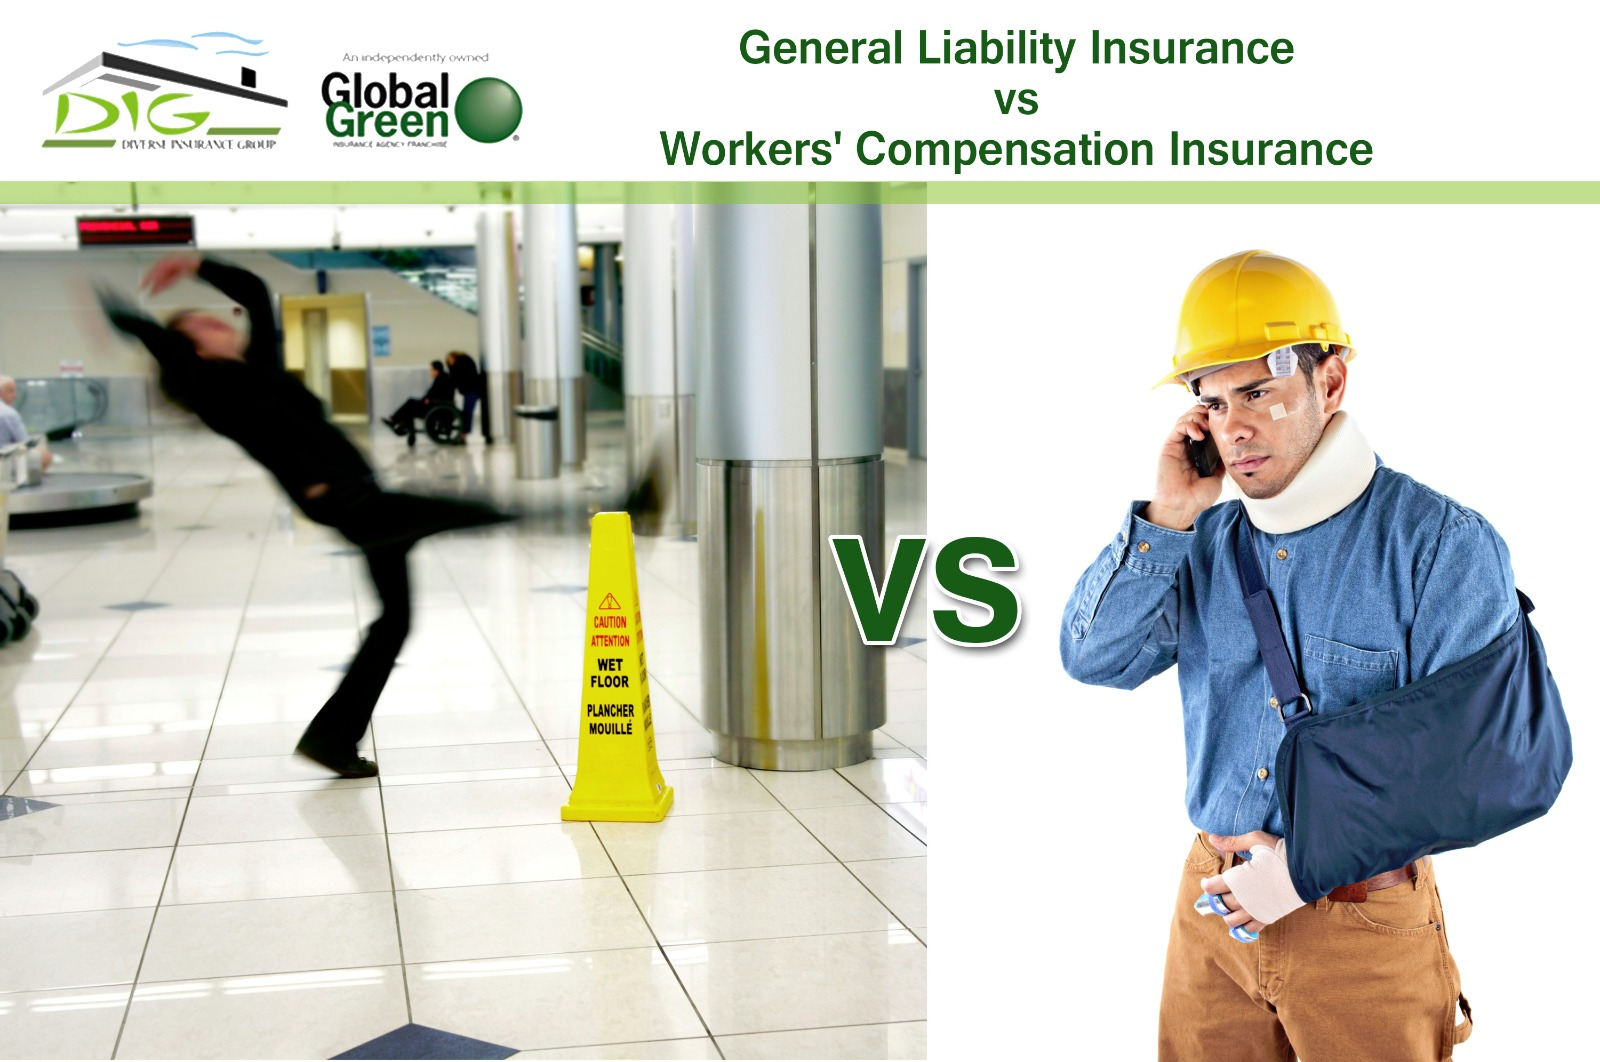 General Liability Insurance Vs Workers' Compensation. Aggressive Prostate Cancer Survival Rate. Carpet Steam Cleaning Los Angeles. Family Roles In Addiction Worksheets. Ex300 Gps Tracking Software Dell Ink Toner. Jewelry Design Companies Free Cpa Cpe Credits. Voice Over Ip Phone Service Providers. Psychological Testing For Adhd. Vision Correction Without Surgery